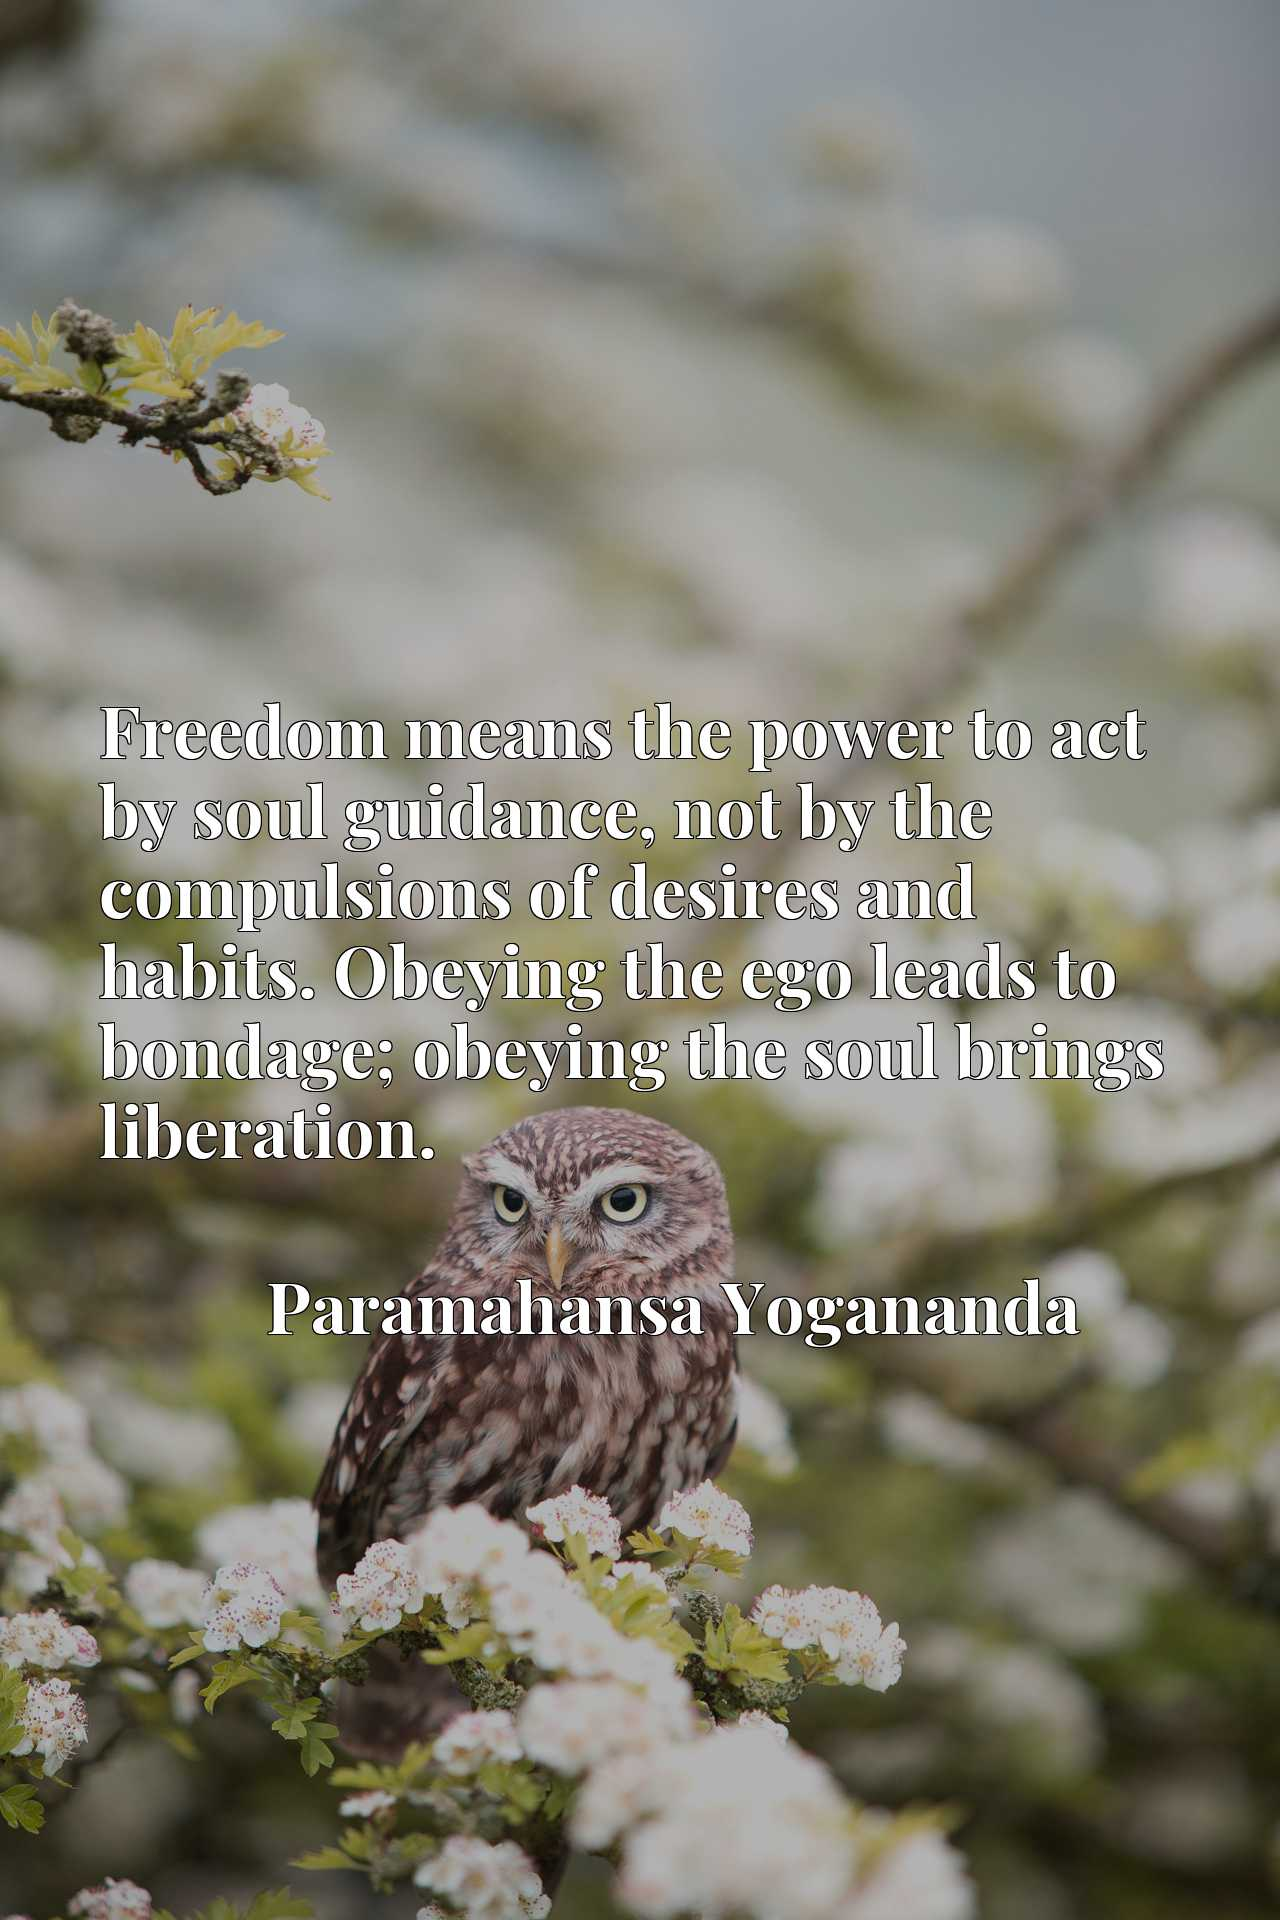 Freedom means the power to act by soul guidance, not by the compulsions of desires and habits. Obeying the ego leads to bondage; obeying the soul brings liberation.